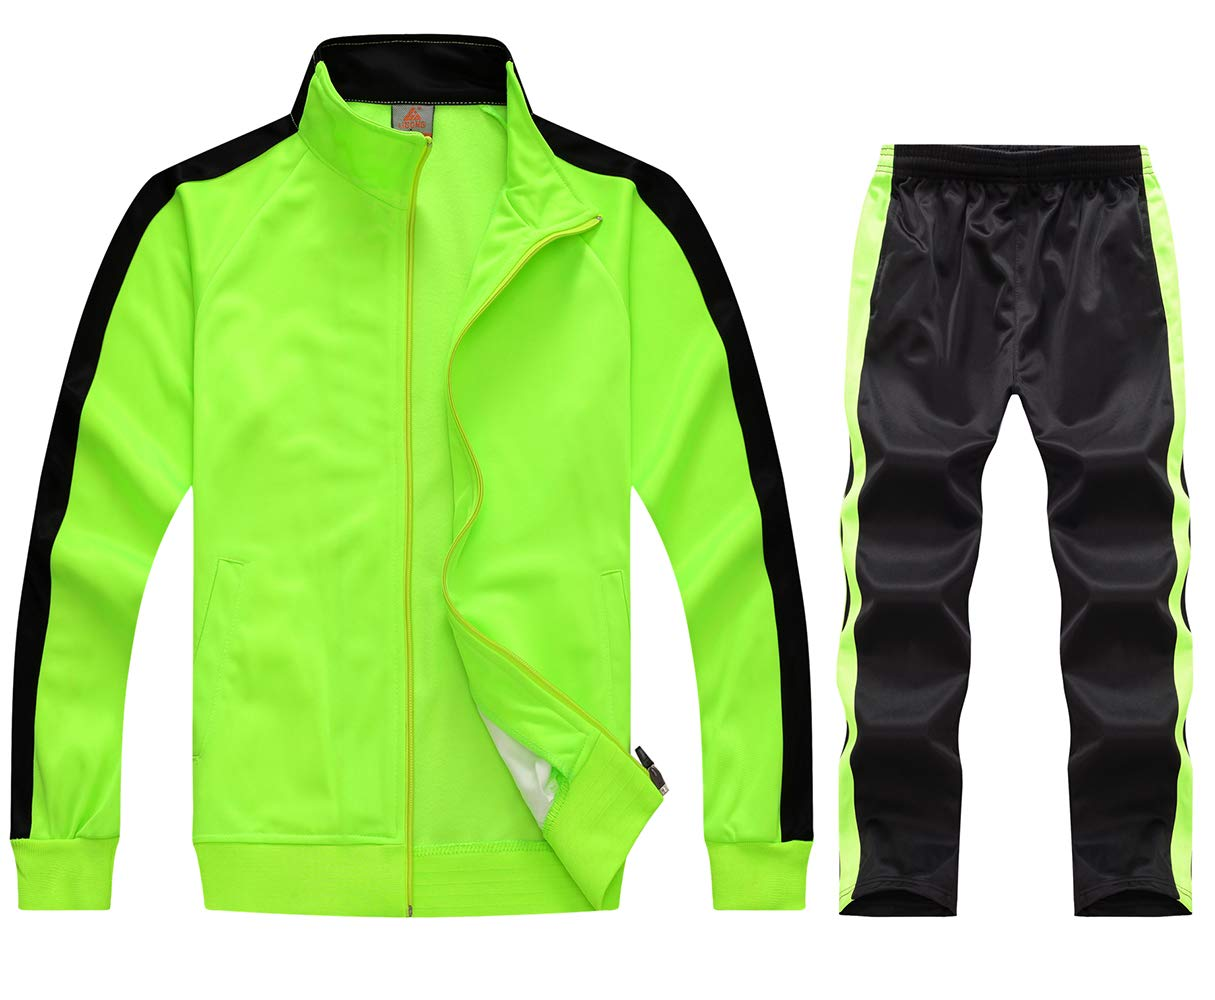 myglory77mall Running Jogging Tracksuit Jacket and Pants Warm Up Gym Wear 6801 Neon XXL US(4XL Asian) by myglory77mall